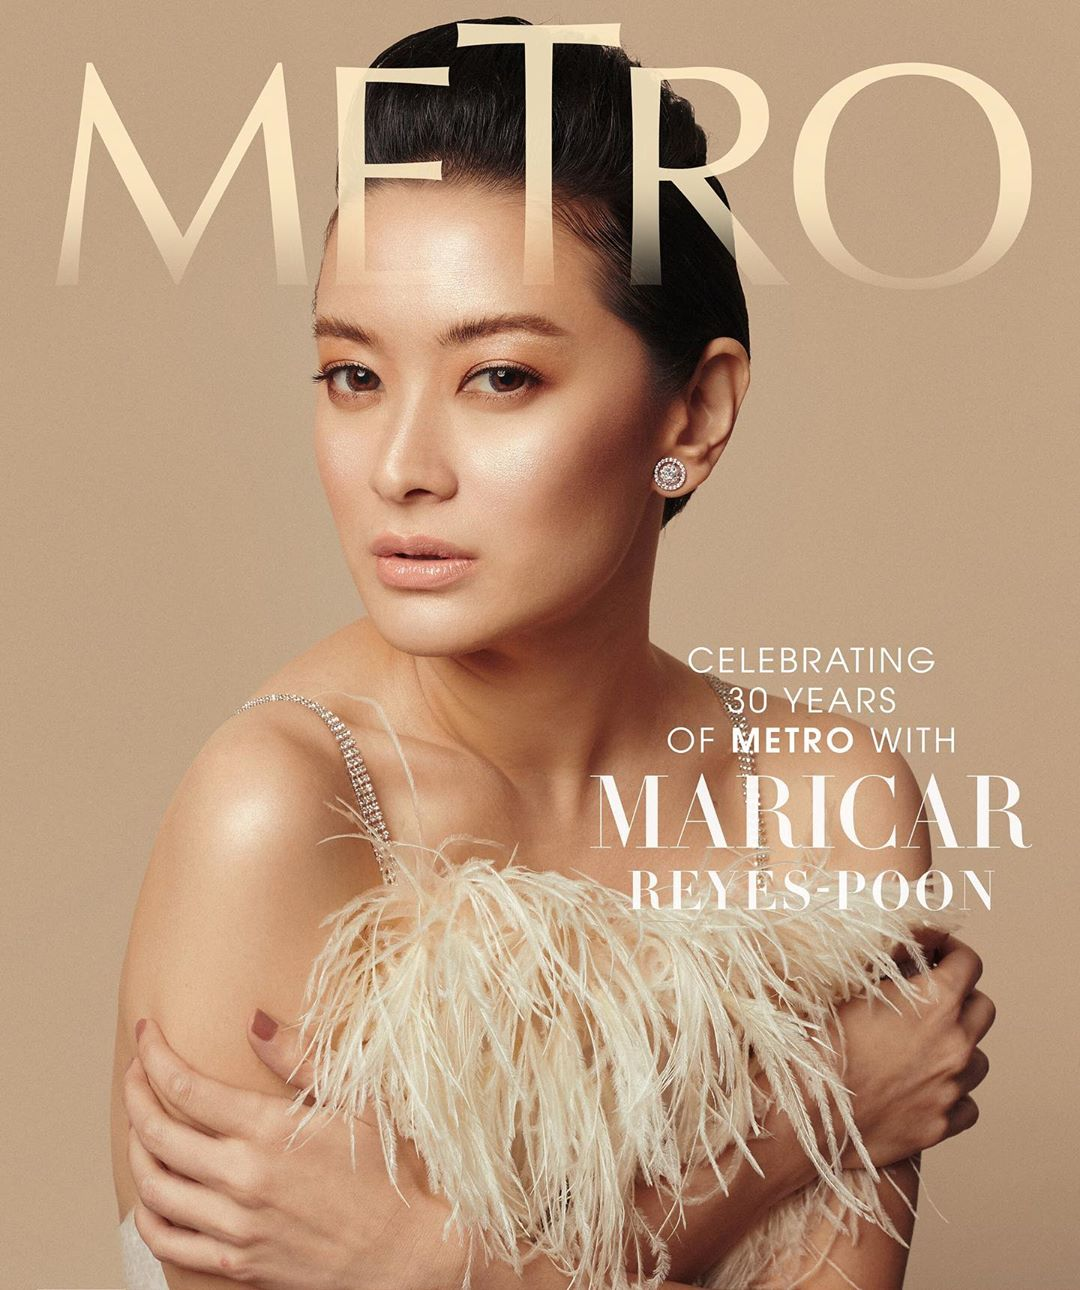 Maricar Reyes-Poon for #Metro30's anniversary issue